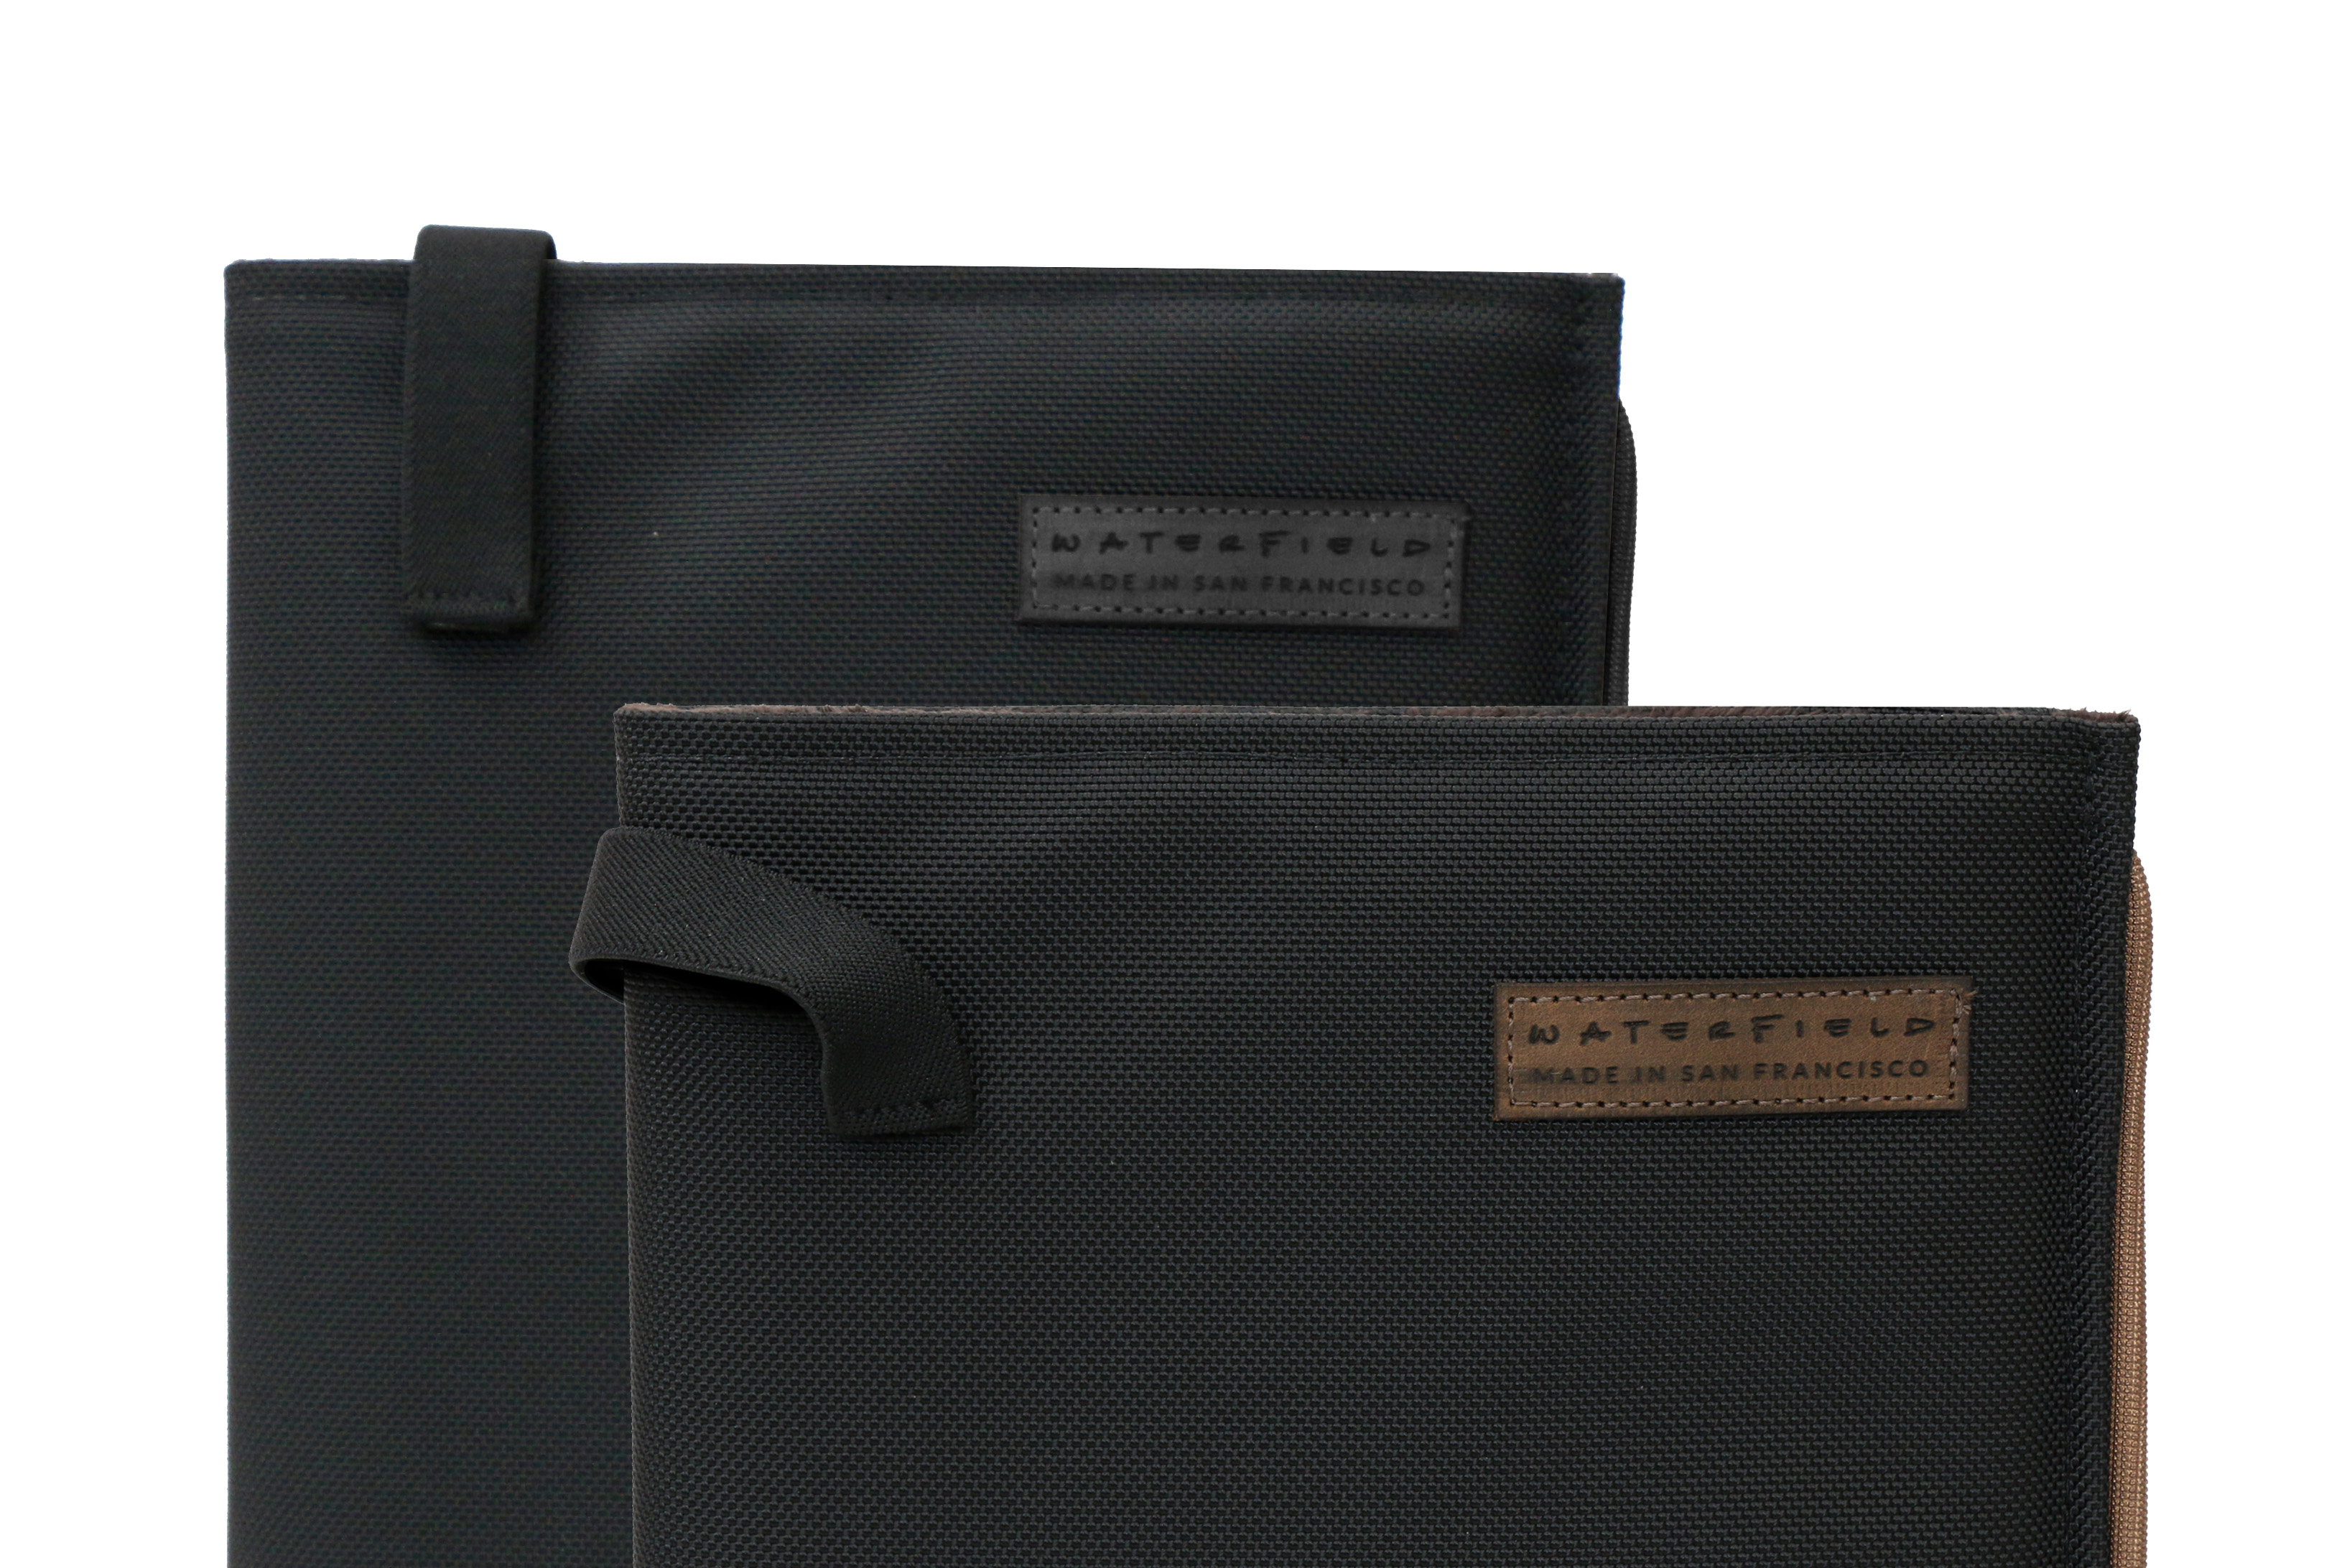 Introducing Waterfield Designs Microsoft Surface Pro 4 And